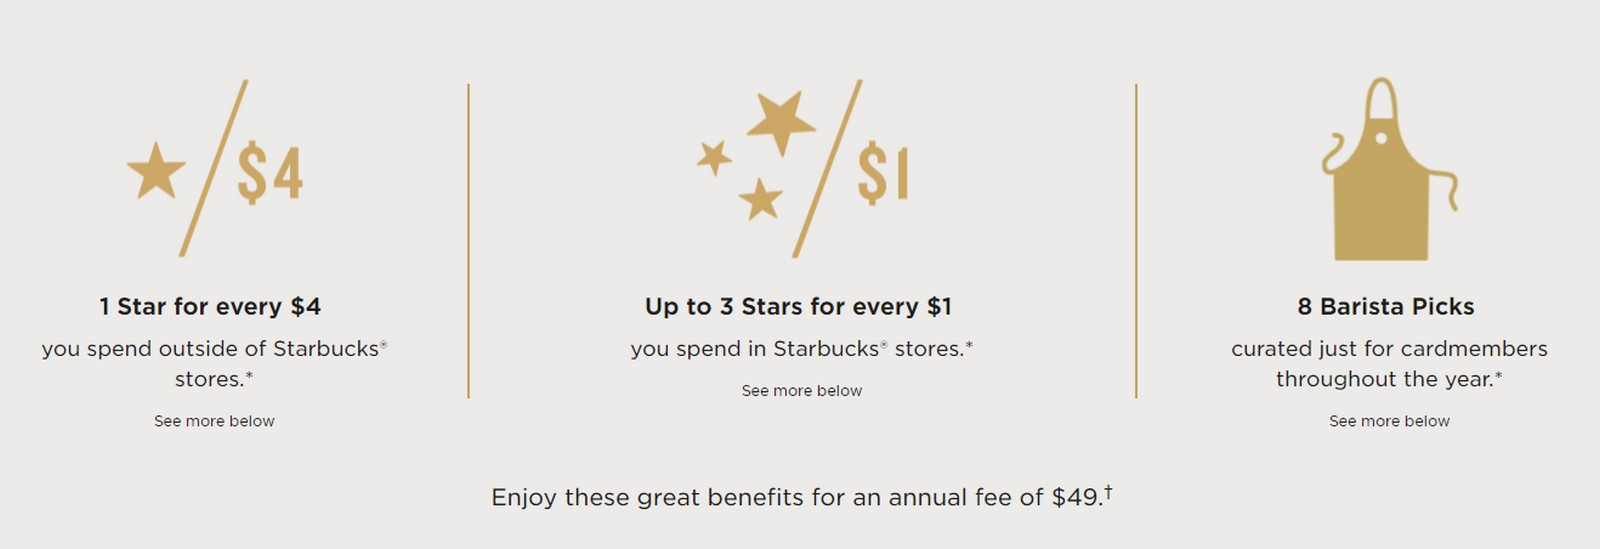 Chase Starbucks Credit Card Review, Should You Get It?